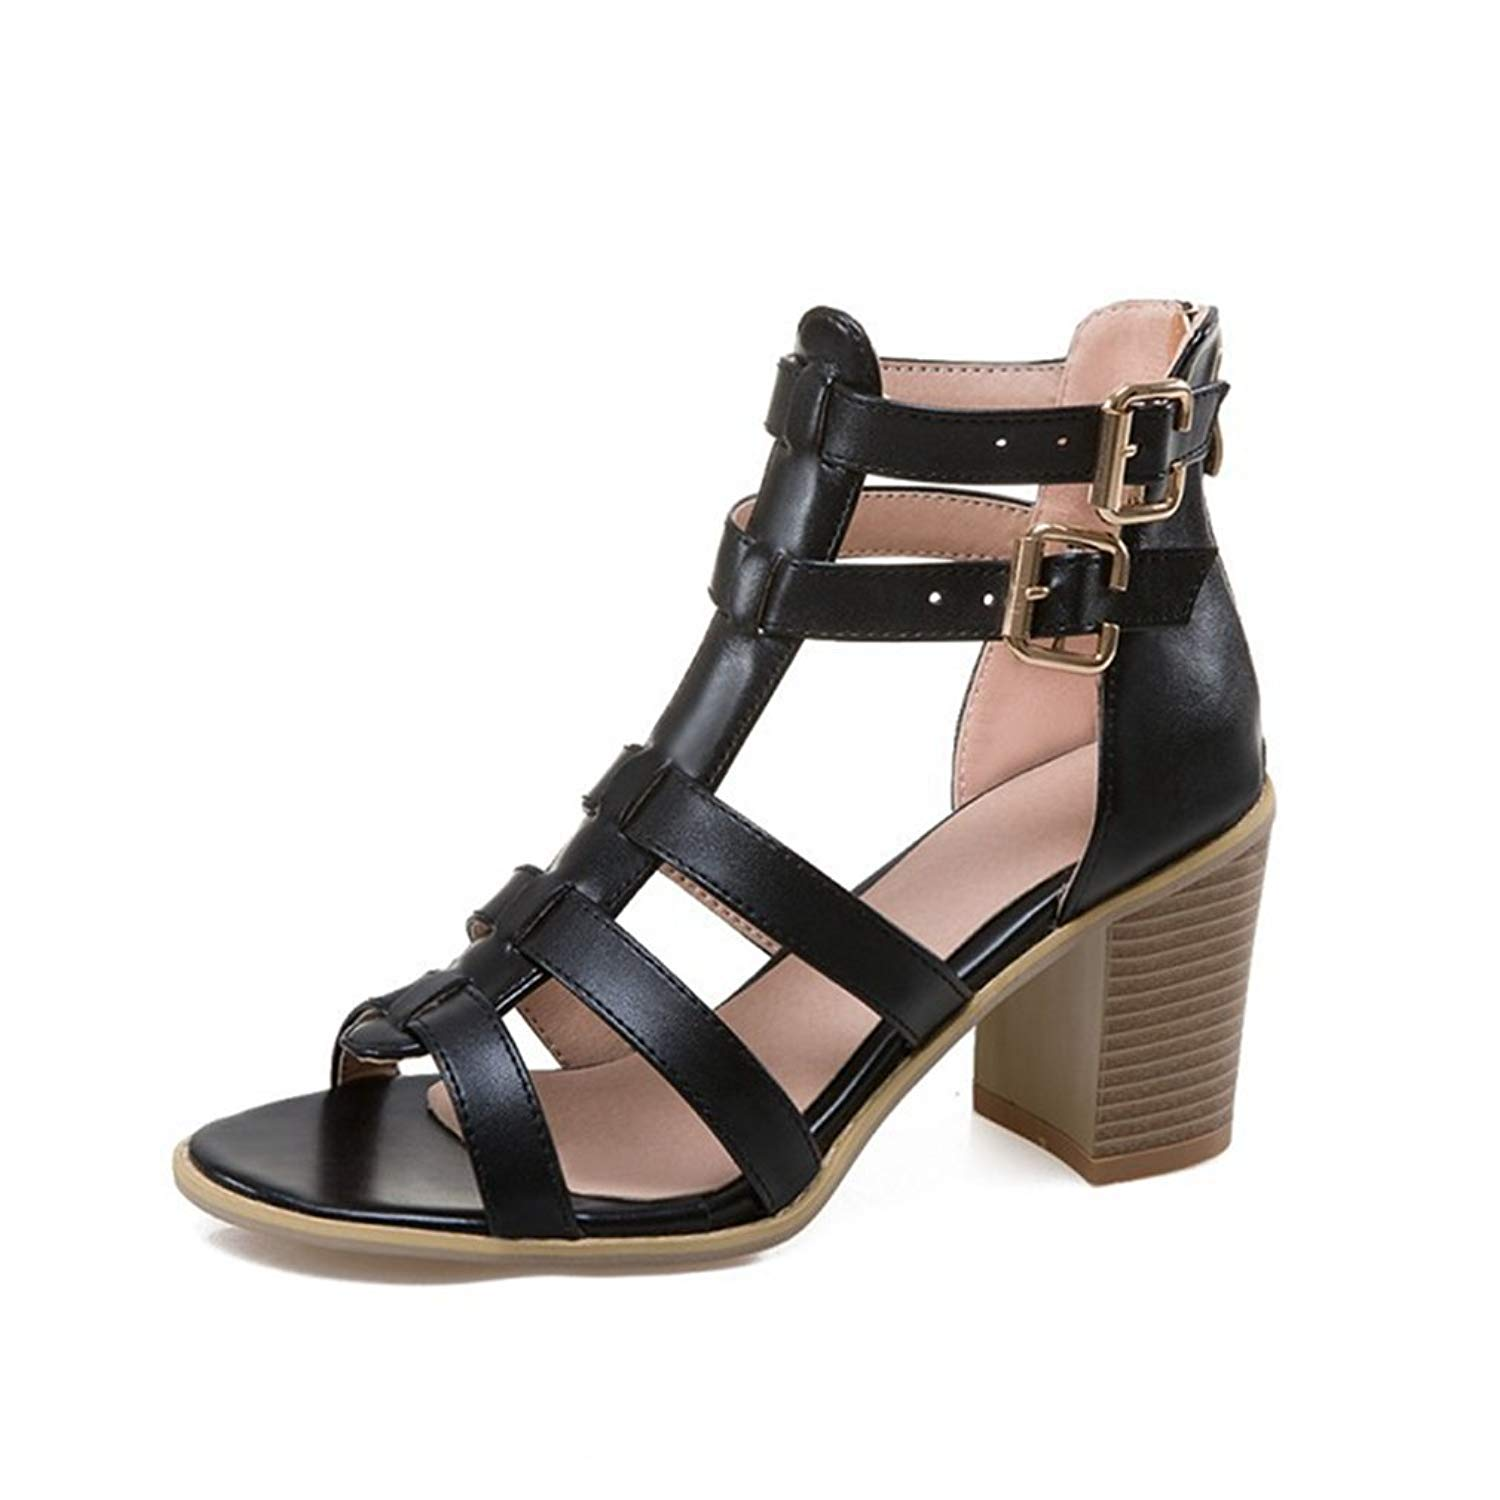 b87261a0200 Get Quotations · GIY Women s Gladiator Strappy High Heel Sandals Peep Toe  Chunky Block Heel Caged Pump Dress Wedges